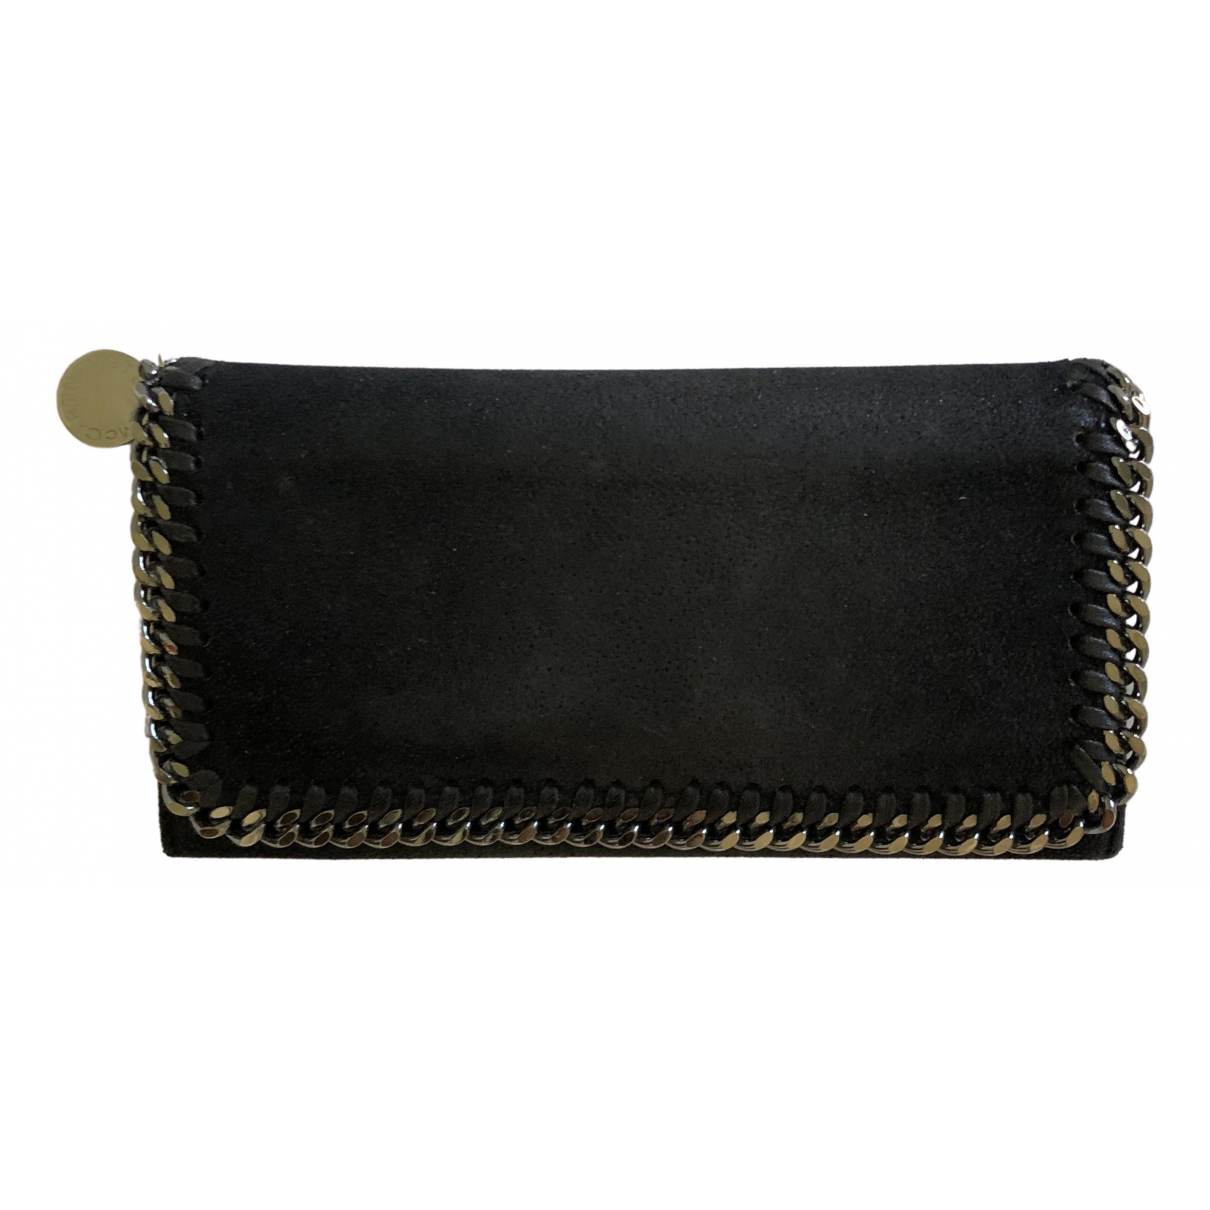 Stella Mccartney \N Black Leather wallet for Women \N